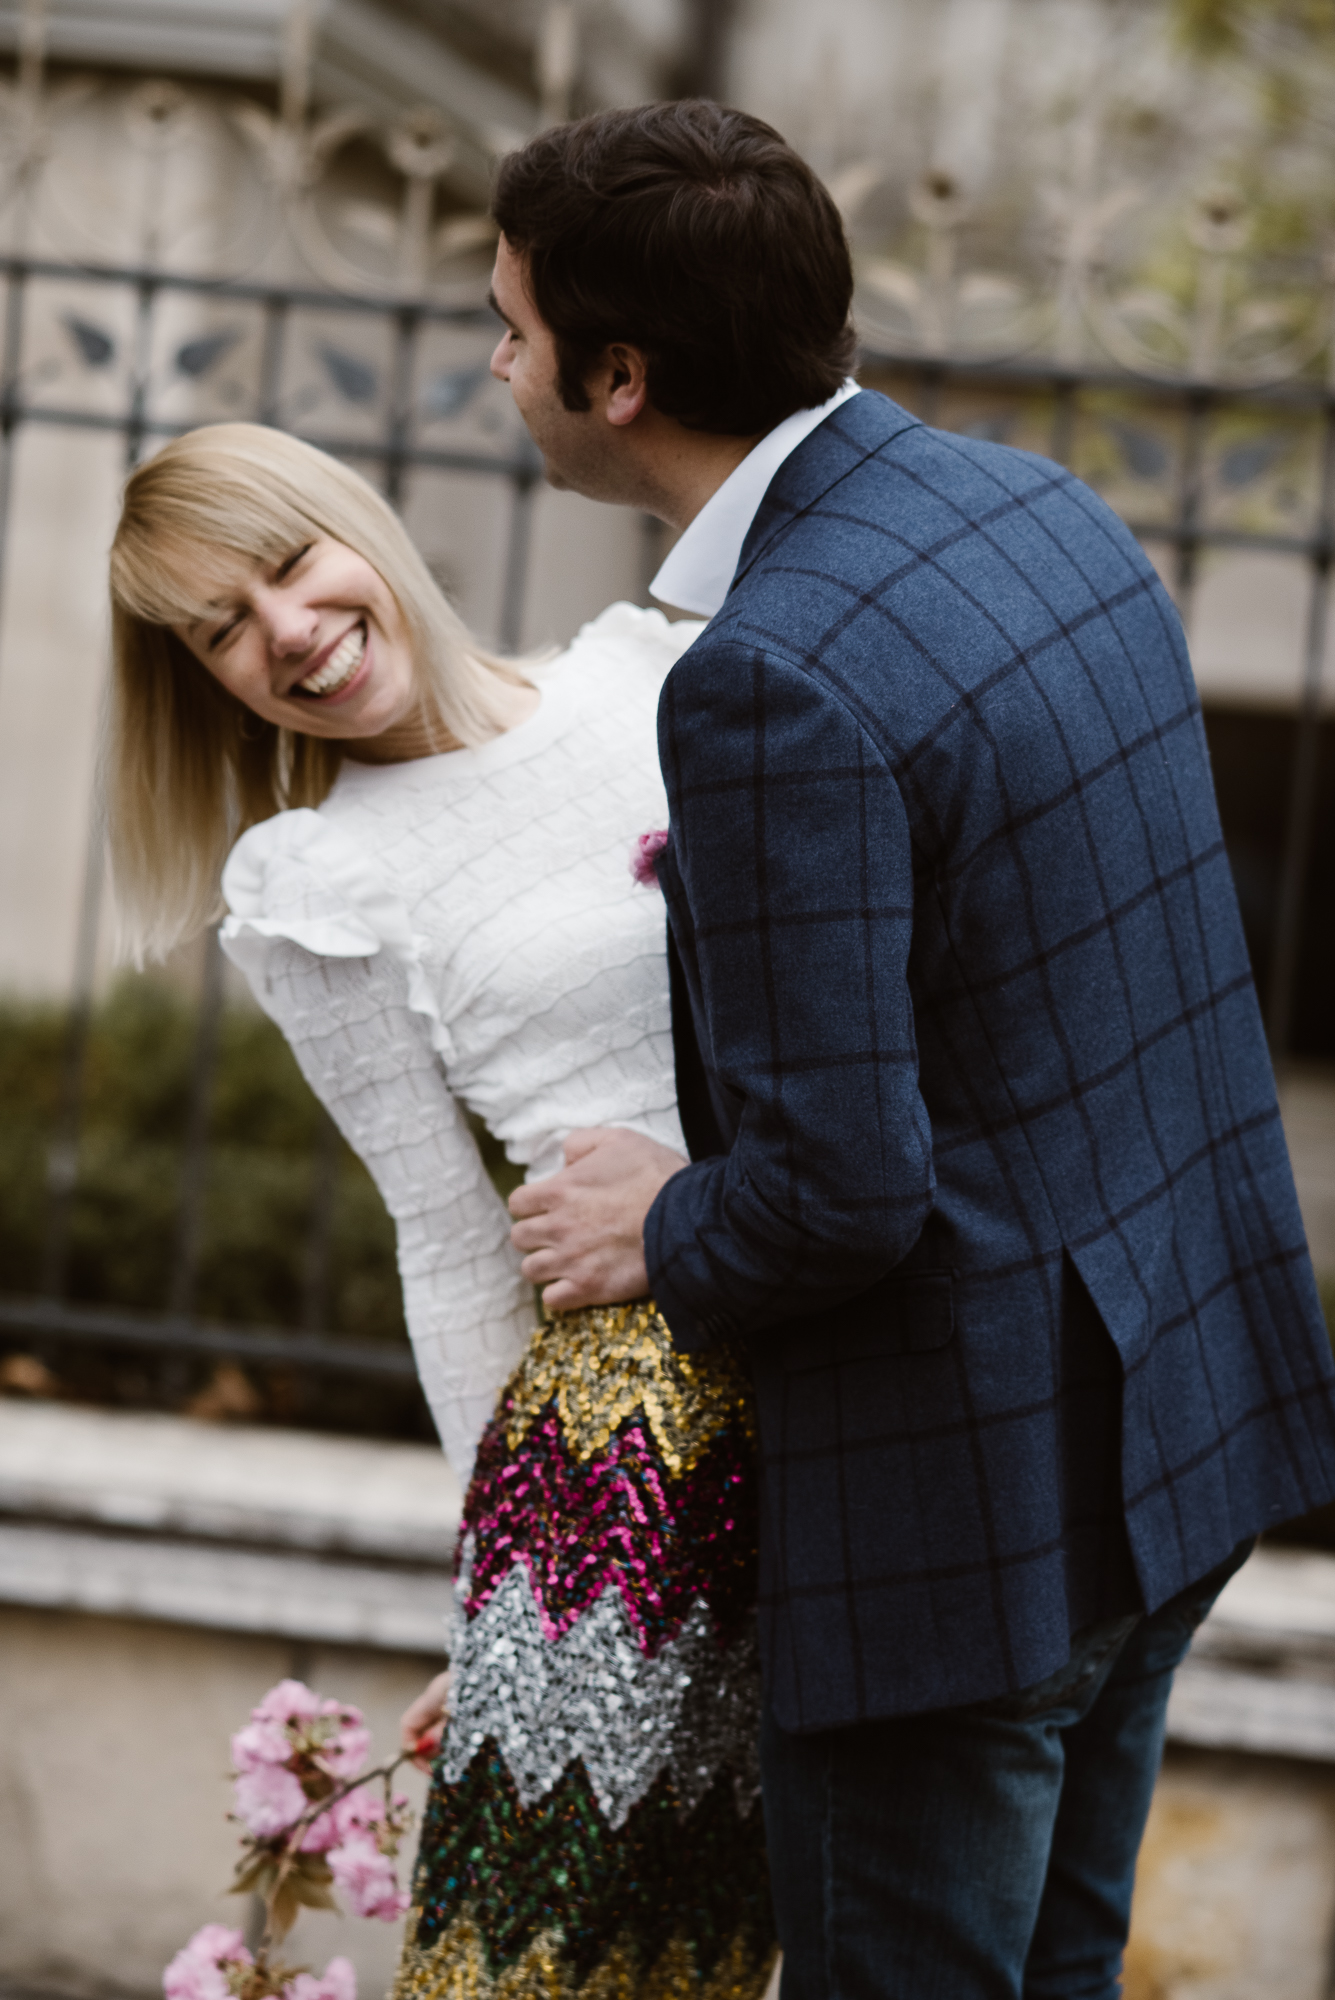 engagement photoshoot in Budapest by The Wedding Fox destination wedding photographer